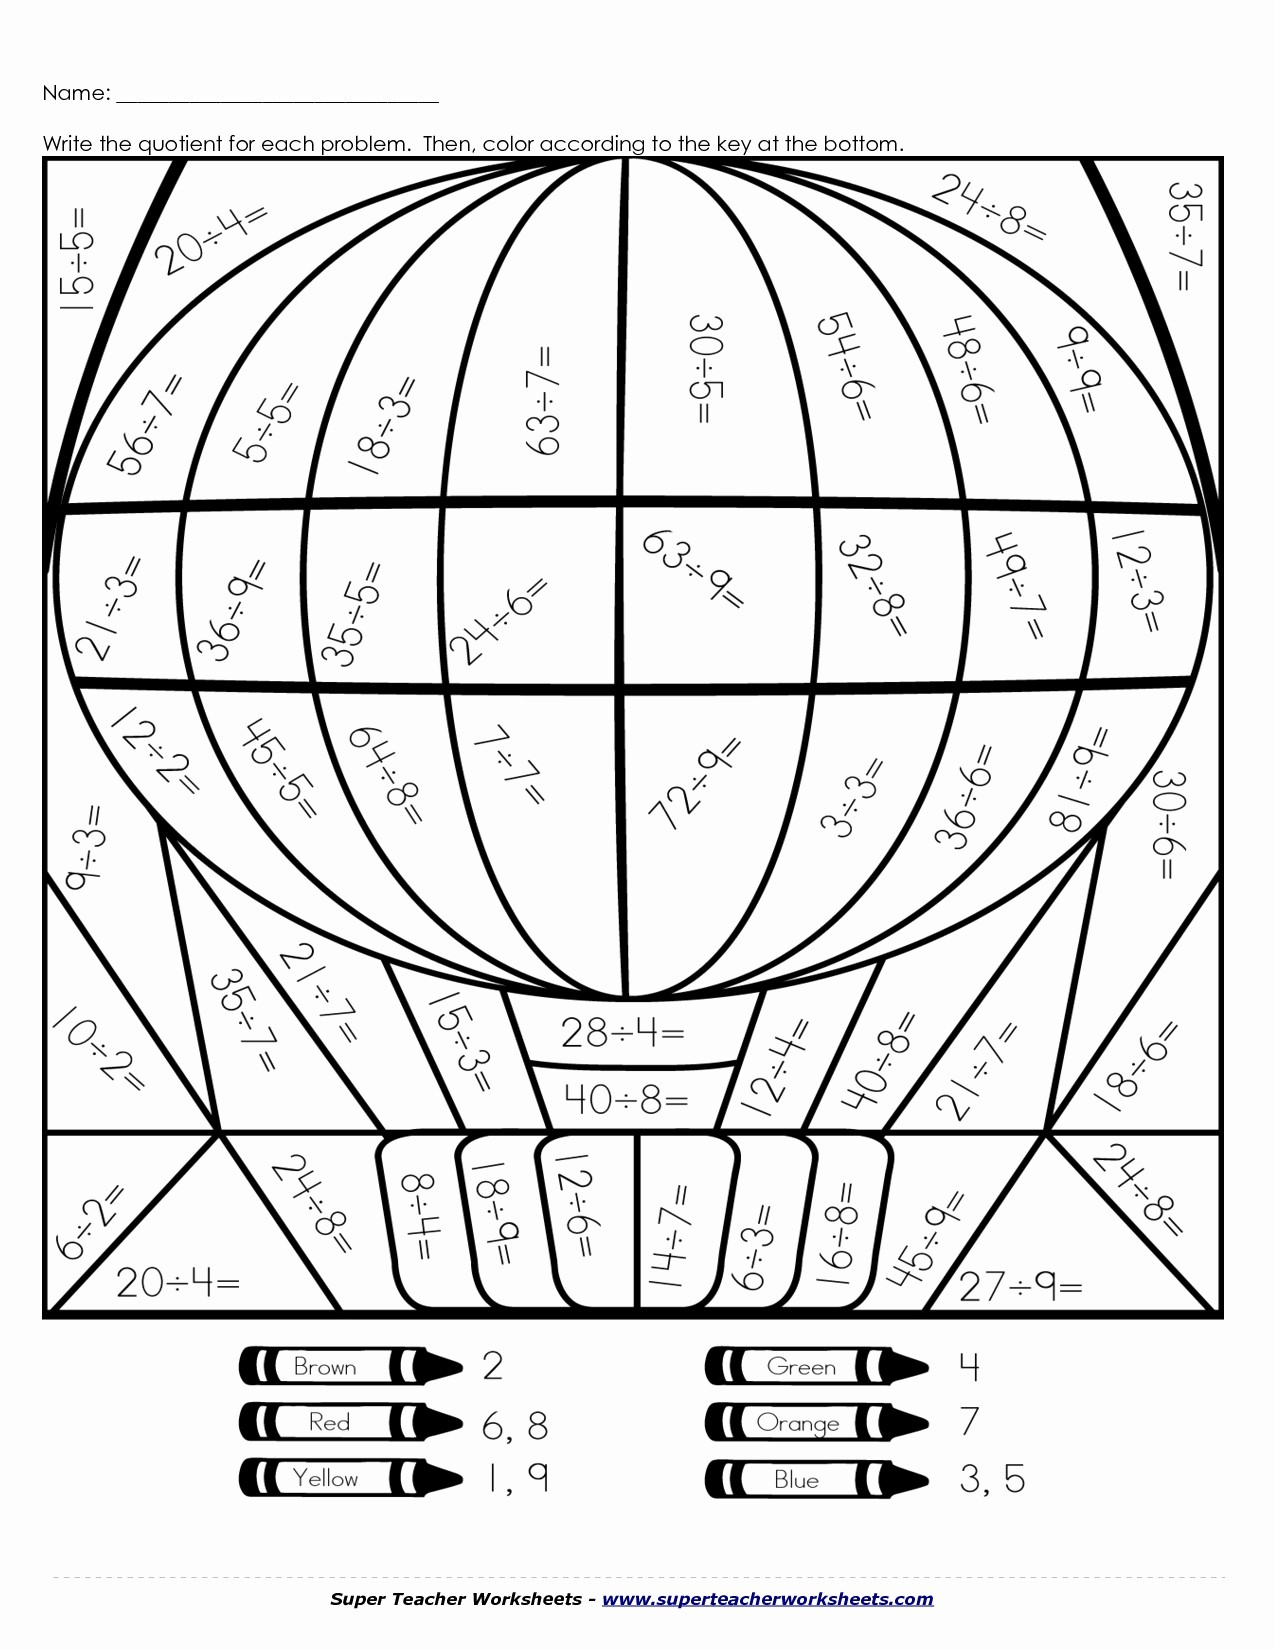 Christmas Coloring Pages For 4th Grade With Graders 27901